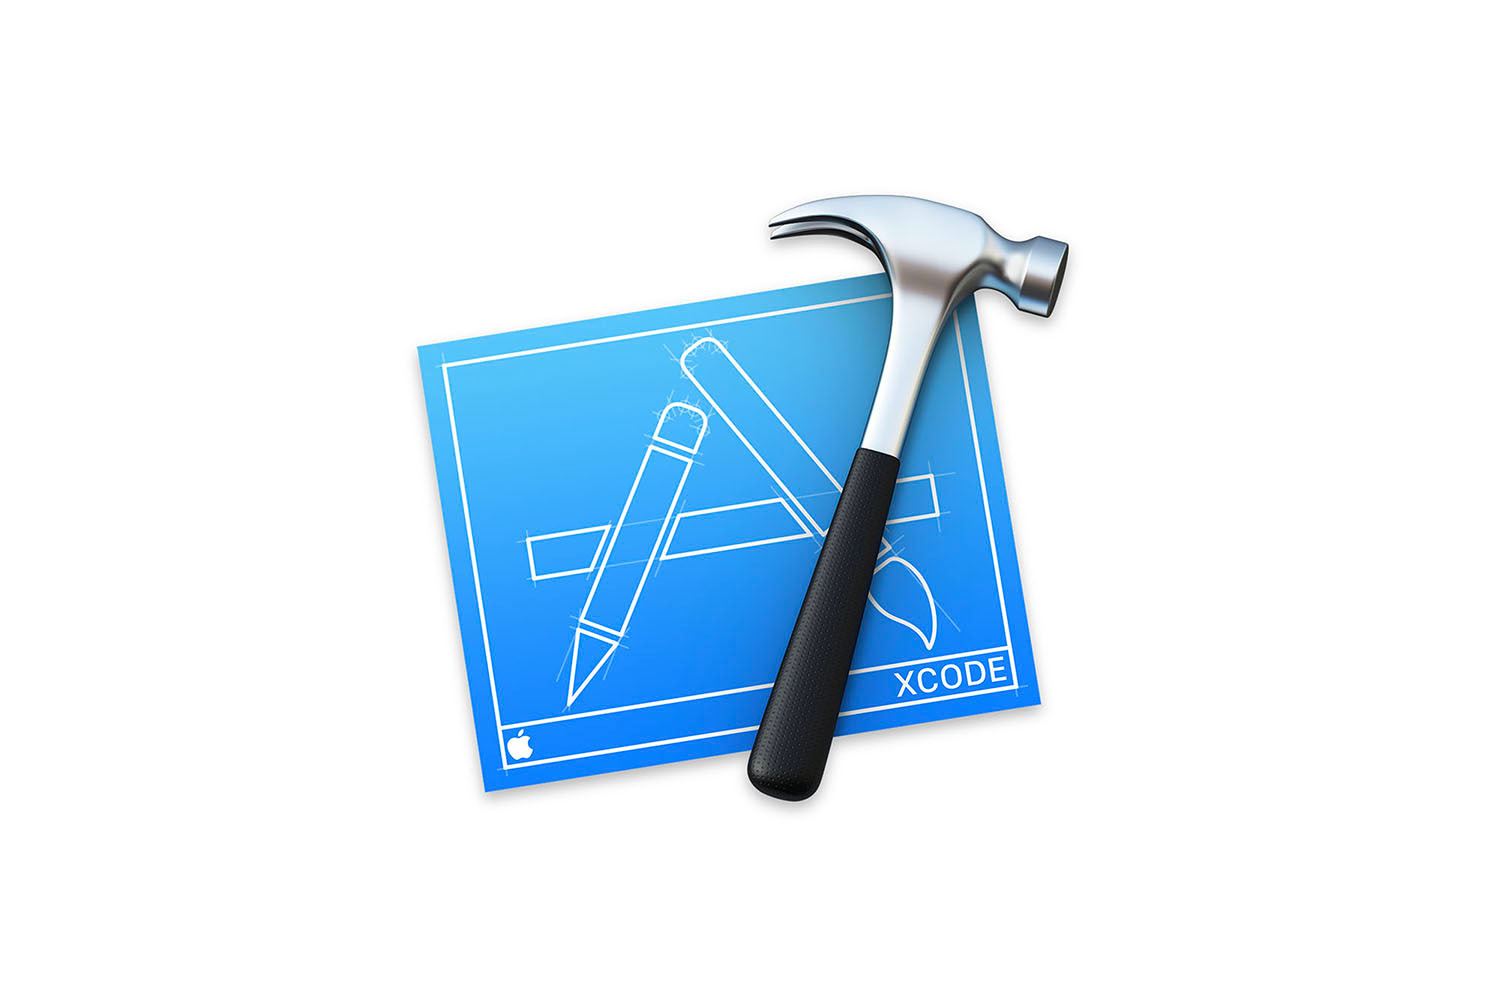 Xcode 12 wish list: SwiftUI, iPadOS, and more